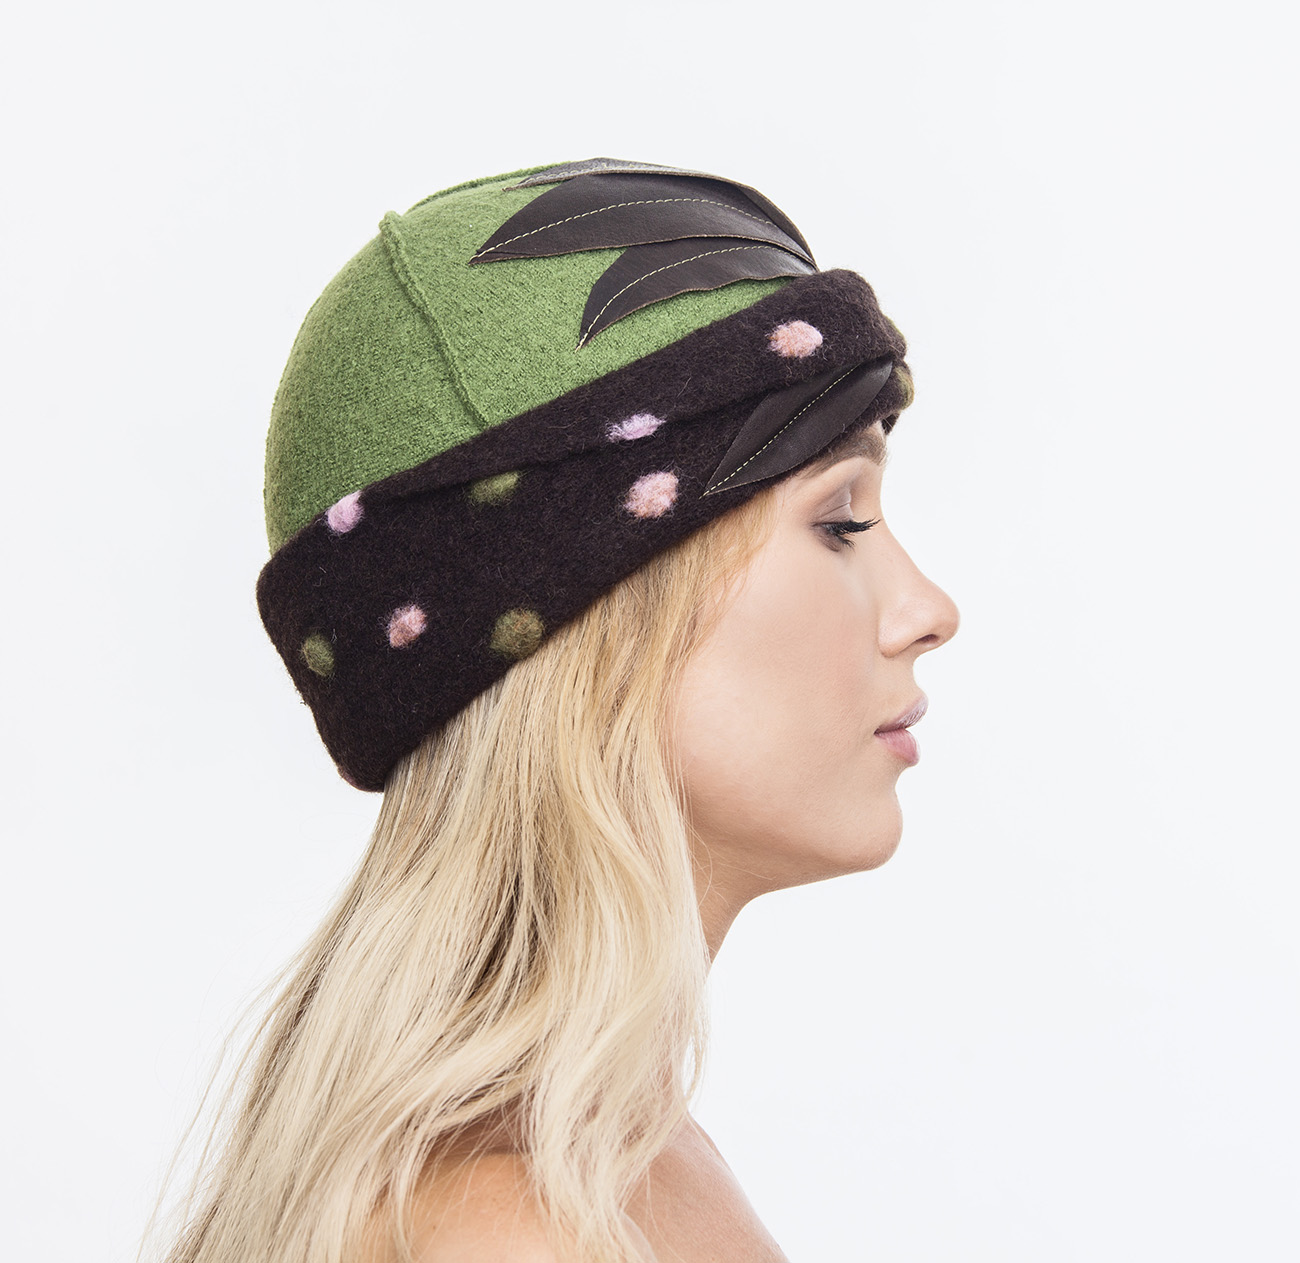 8968c76cc69 Green Boiled Wool Cloche with Leather Leaves - Atelier Alberto ...